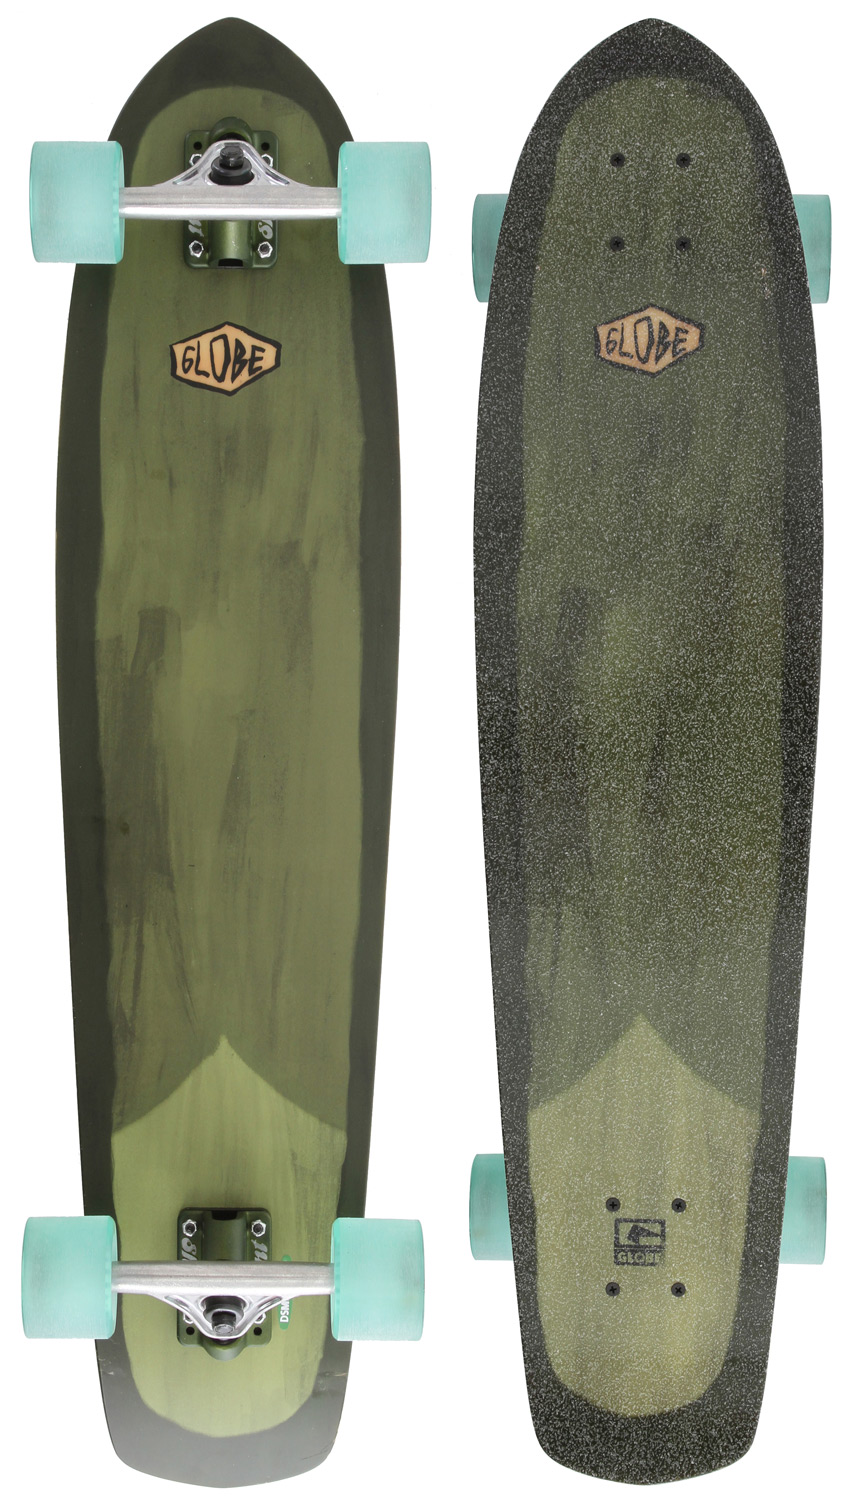 Skateboard Key Features of the Globe Del Rey Longboard Skateboard Green/White: 5 Ply Fiber Carve, Convex Flex Construction Globe First Bushings Painted Surfboard Inspired Art Under Clear Broadcast Grip Abec 7 Precision Speed Bearing And High Tensile Hardware 150Mm Slant Inverted Trucks 69Mm 83A Conical Wheels - $169.95